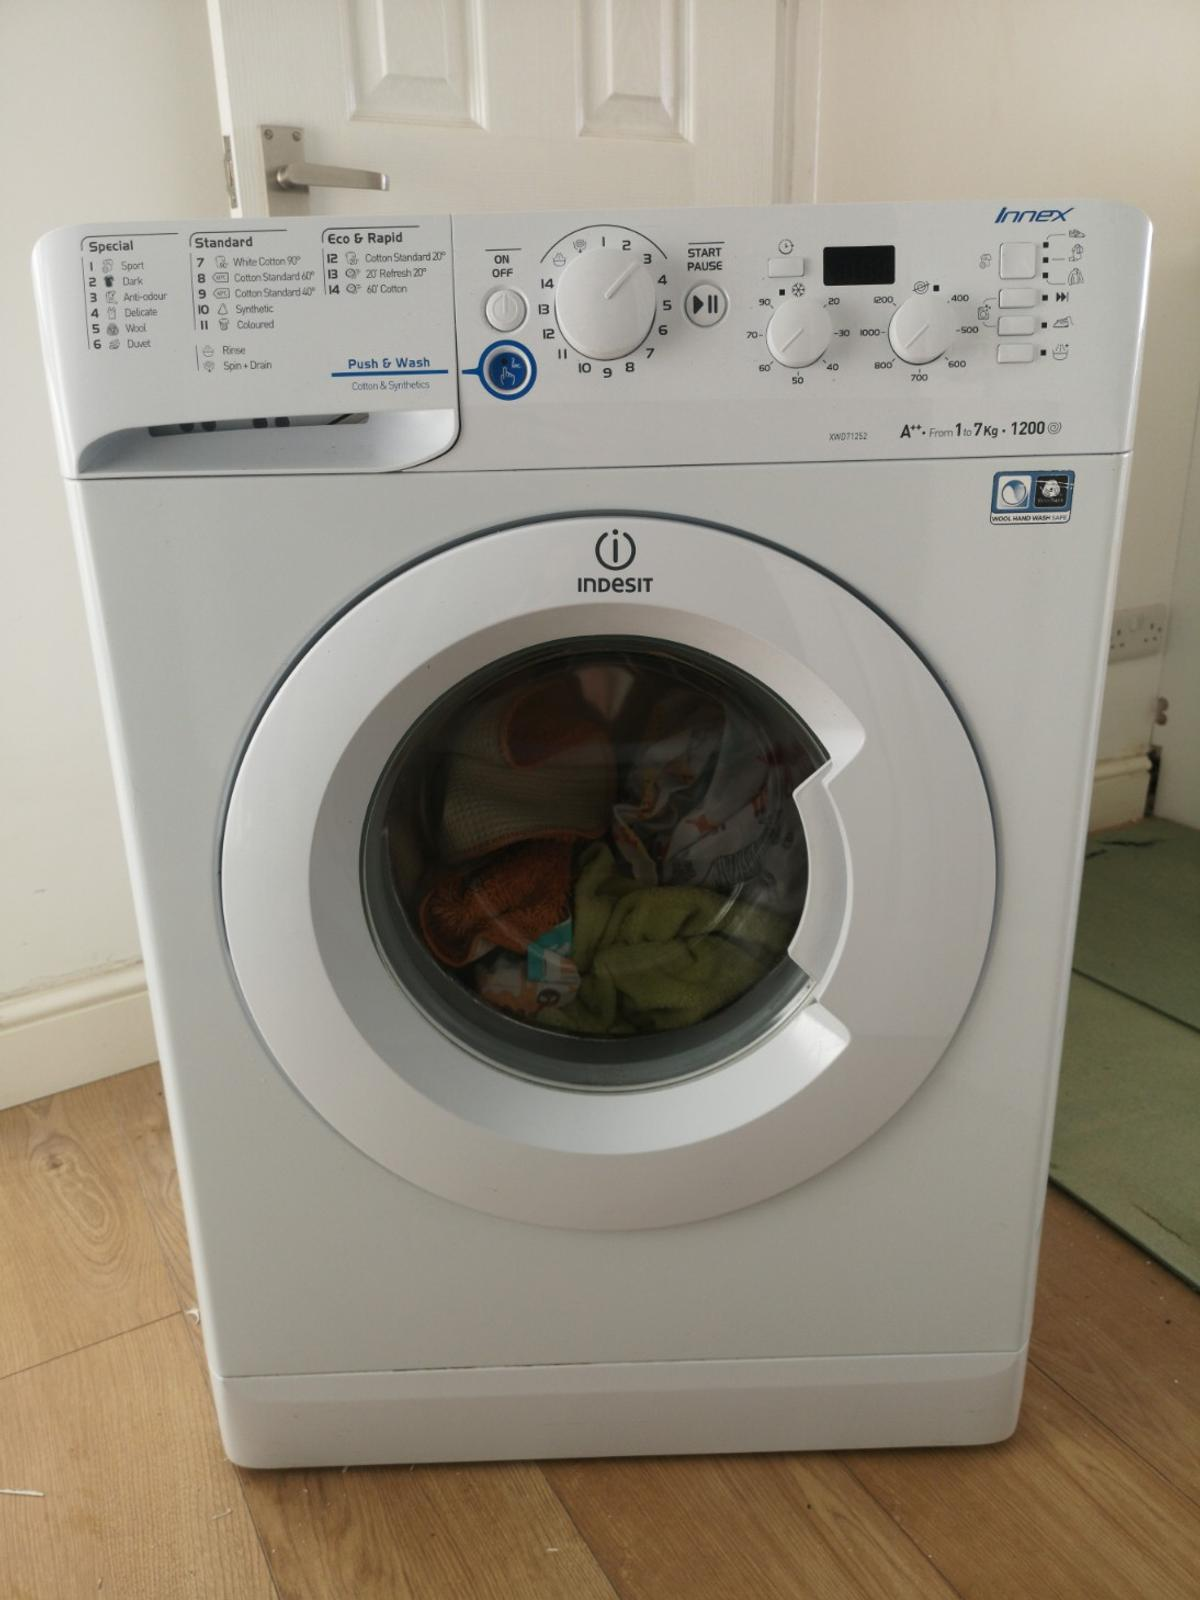 Indesit Xwd 0871252 7kg,1200, Washing Machine